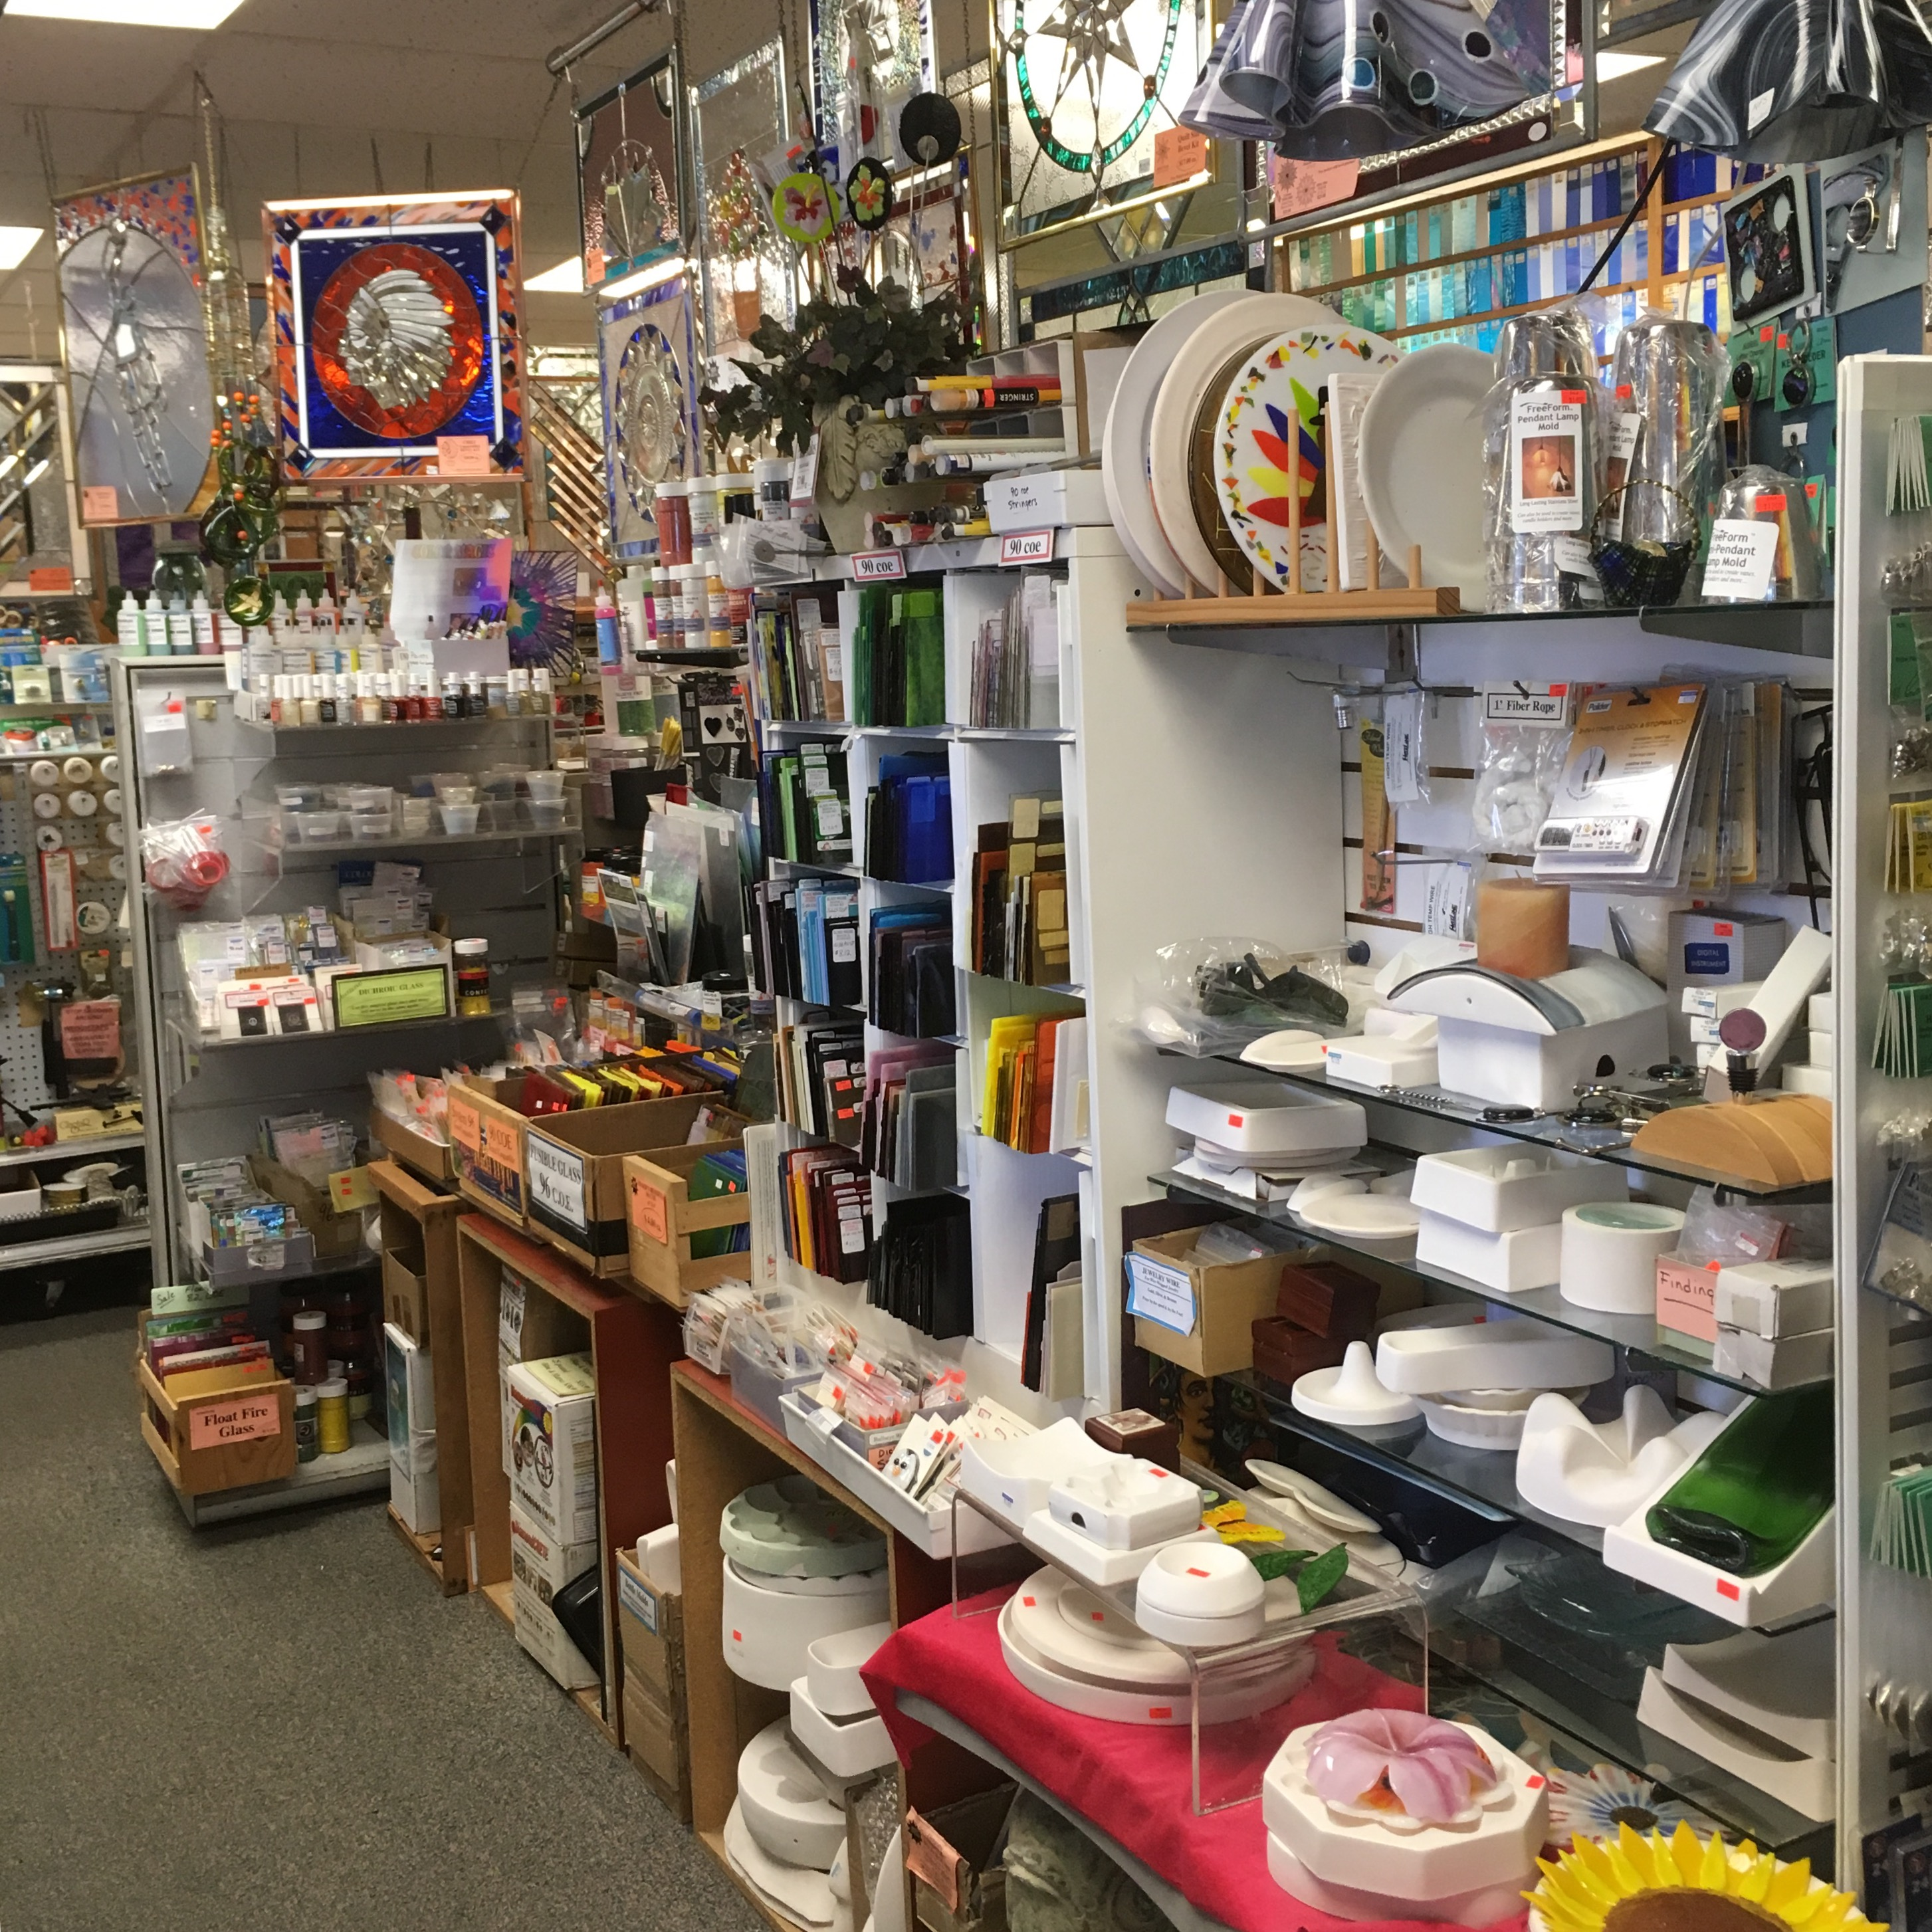 Largest selection of fusing glass and supplies in the Midwest.